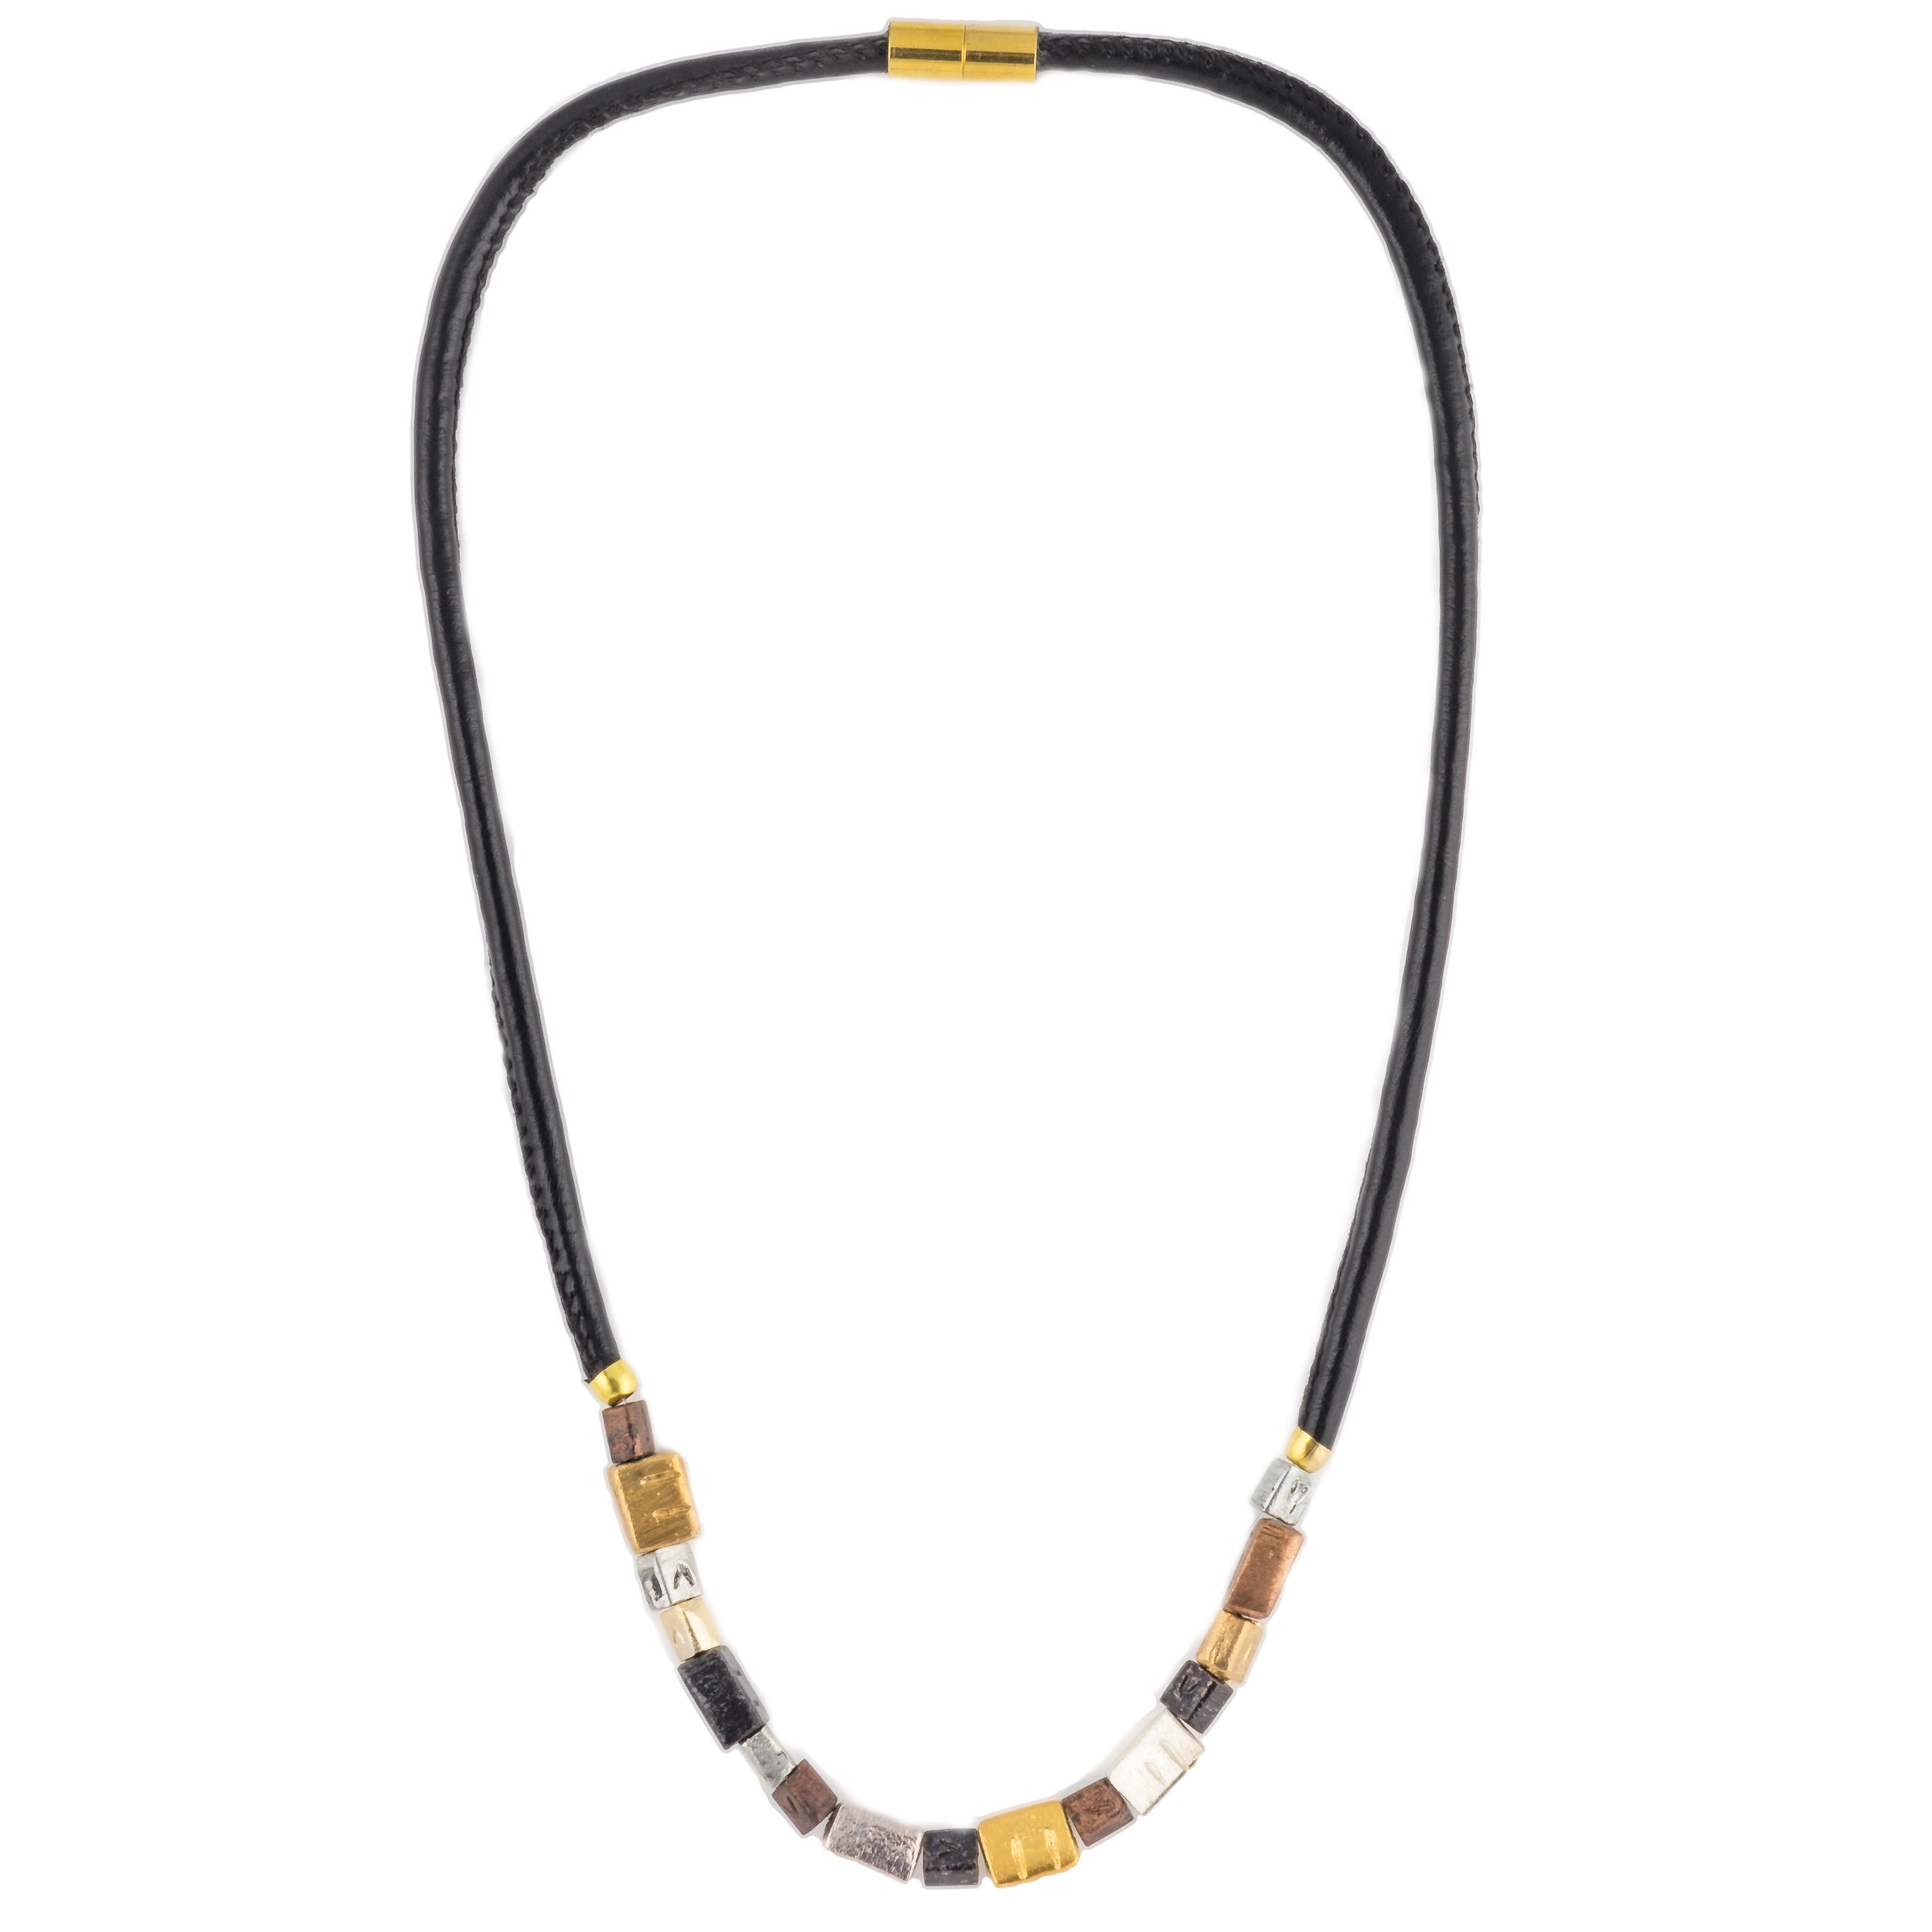 Necklace - 2 (1 of 1)-Edit.jpg